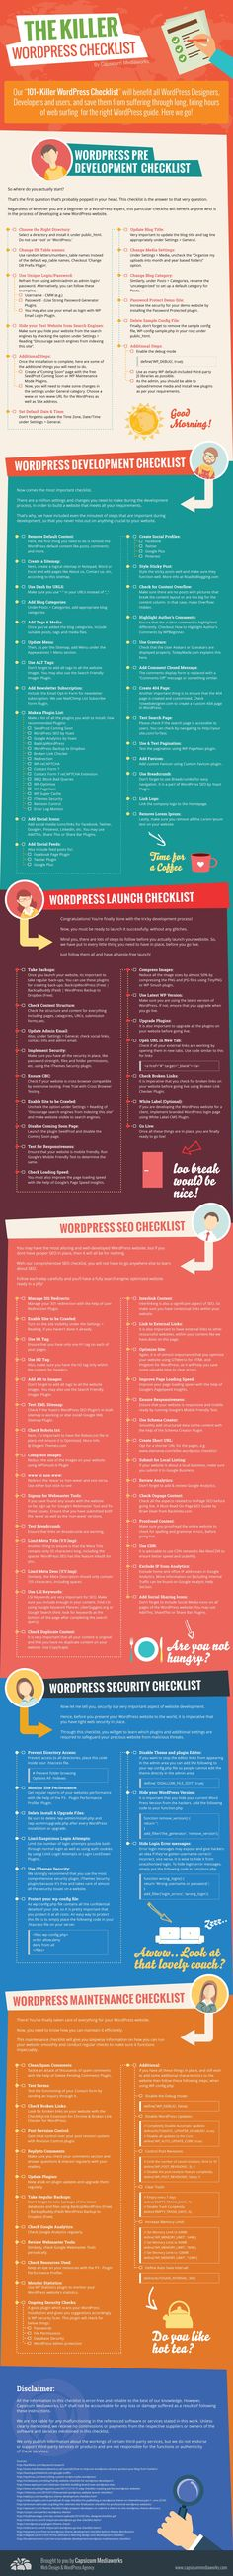 WordPress Checklist: complete and usuful #wordpress #seo #webdesign #webdevelopment #wp